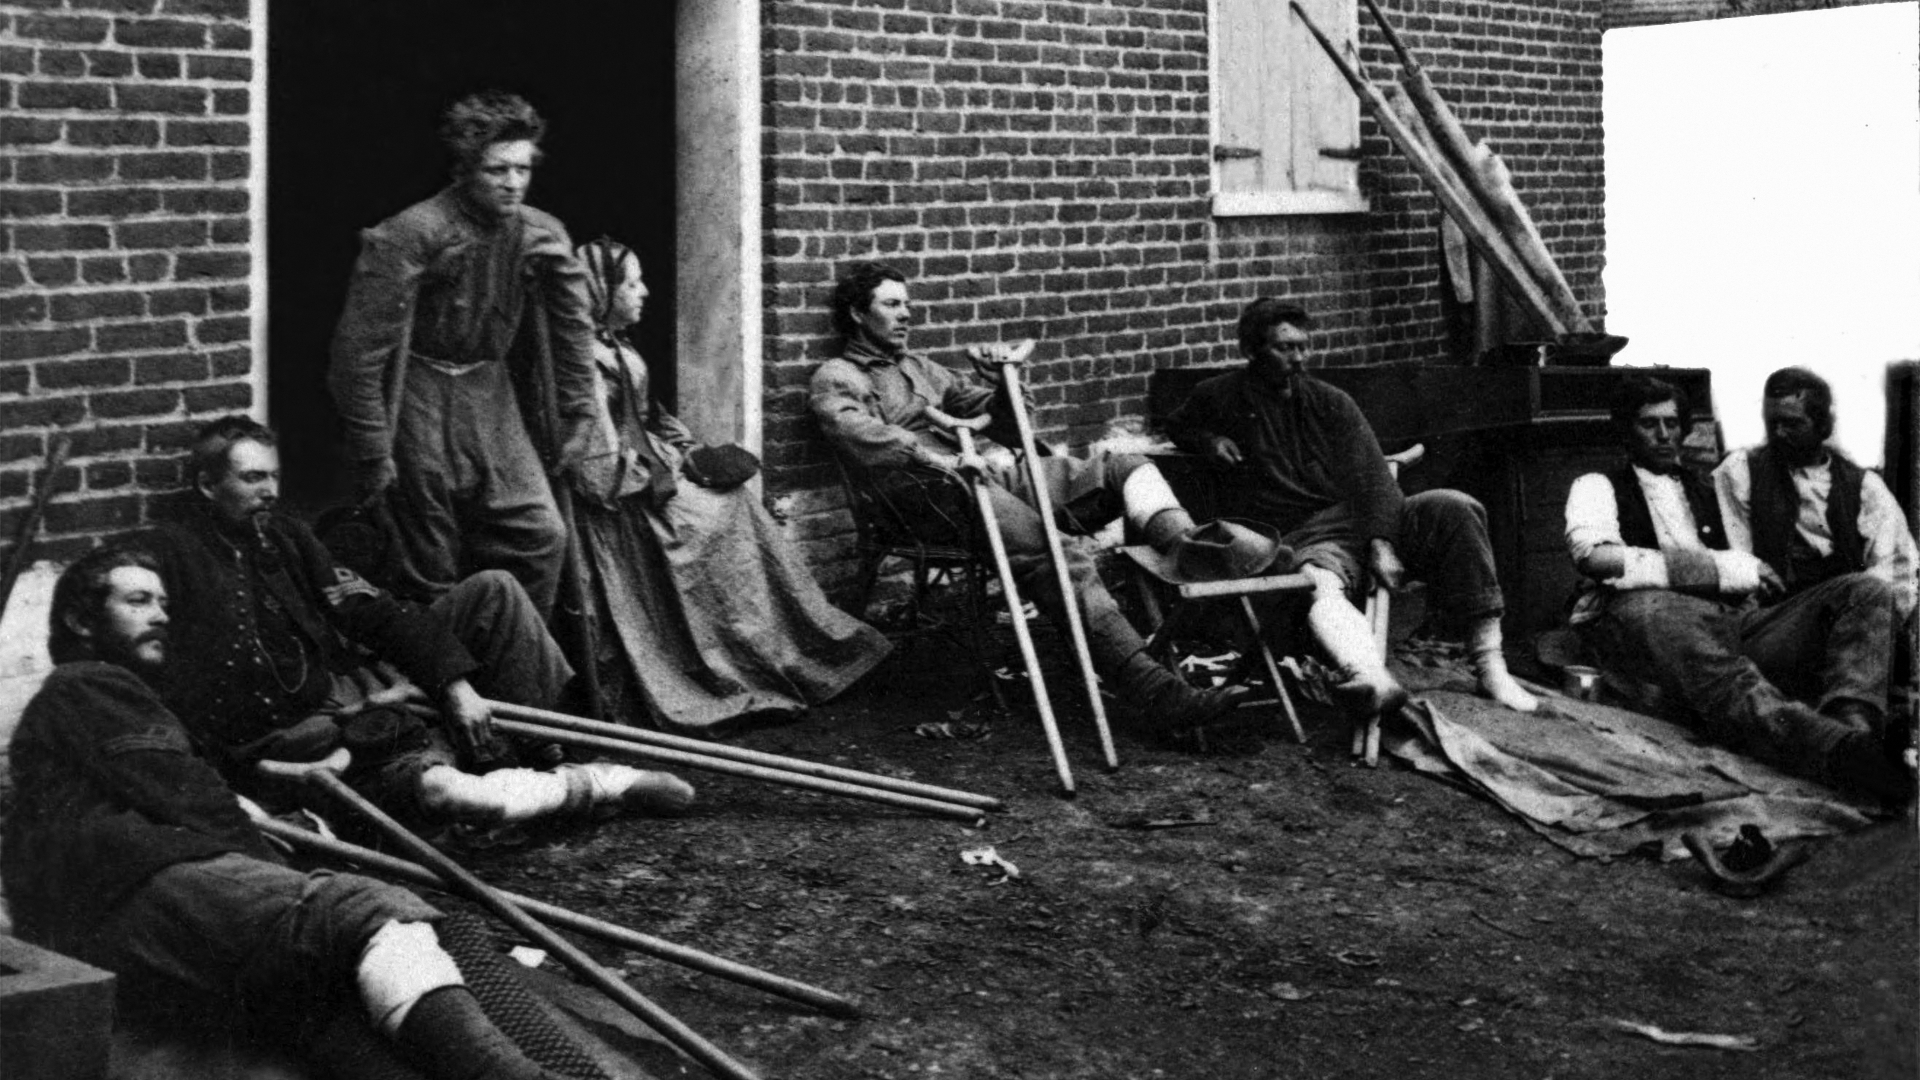 Wounded soldiers outside a brick hospital building in Fredericksburg, Virginia, 1864. (Credit: James Gardner/Buyenlarge/Getty Images)